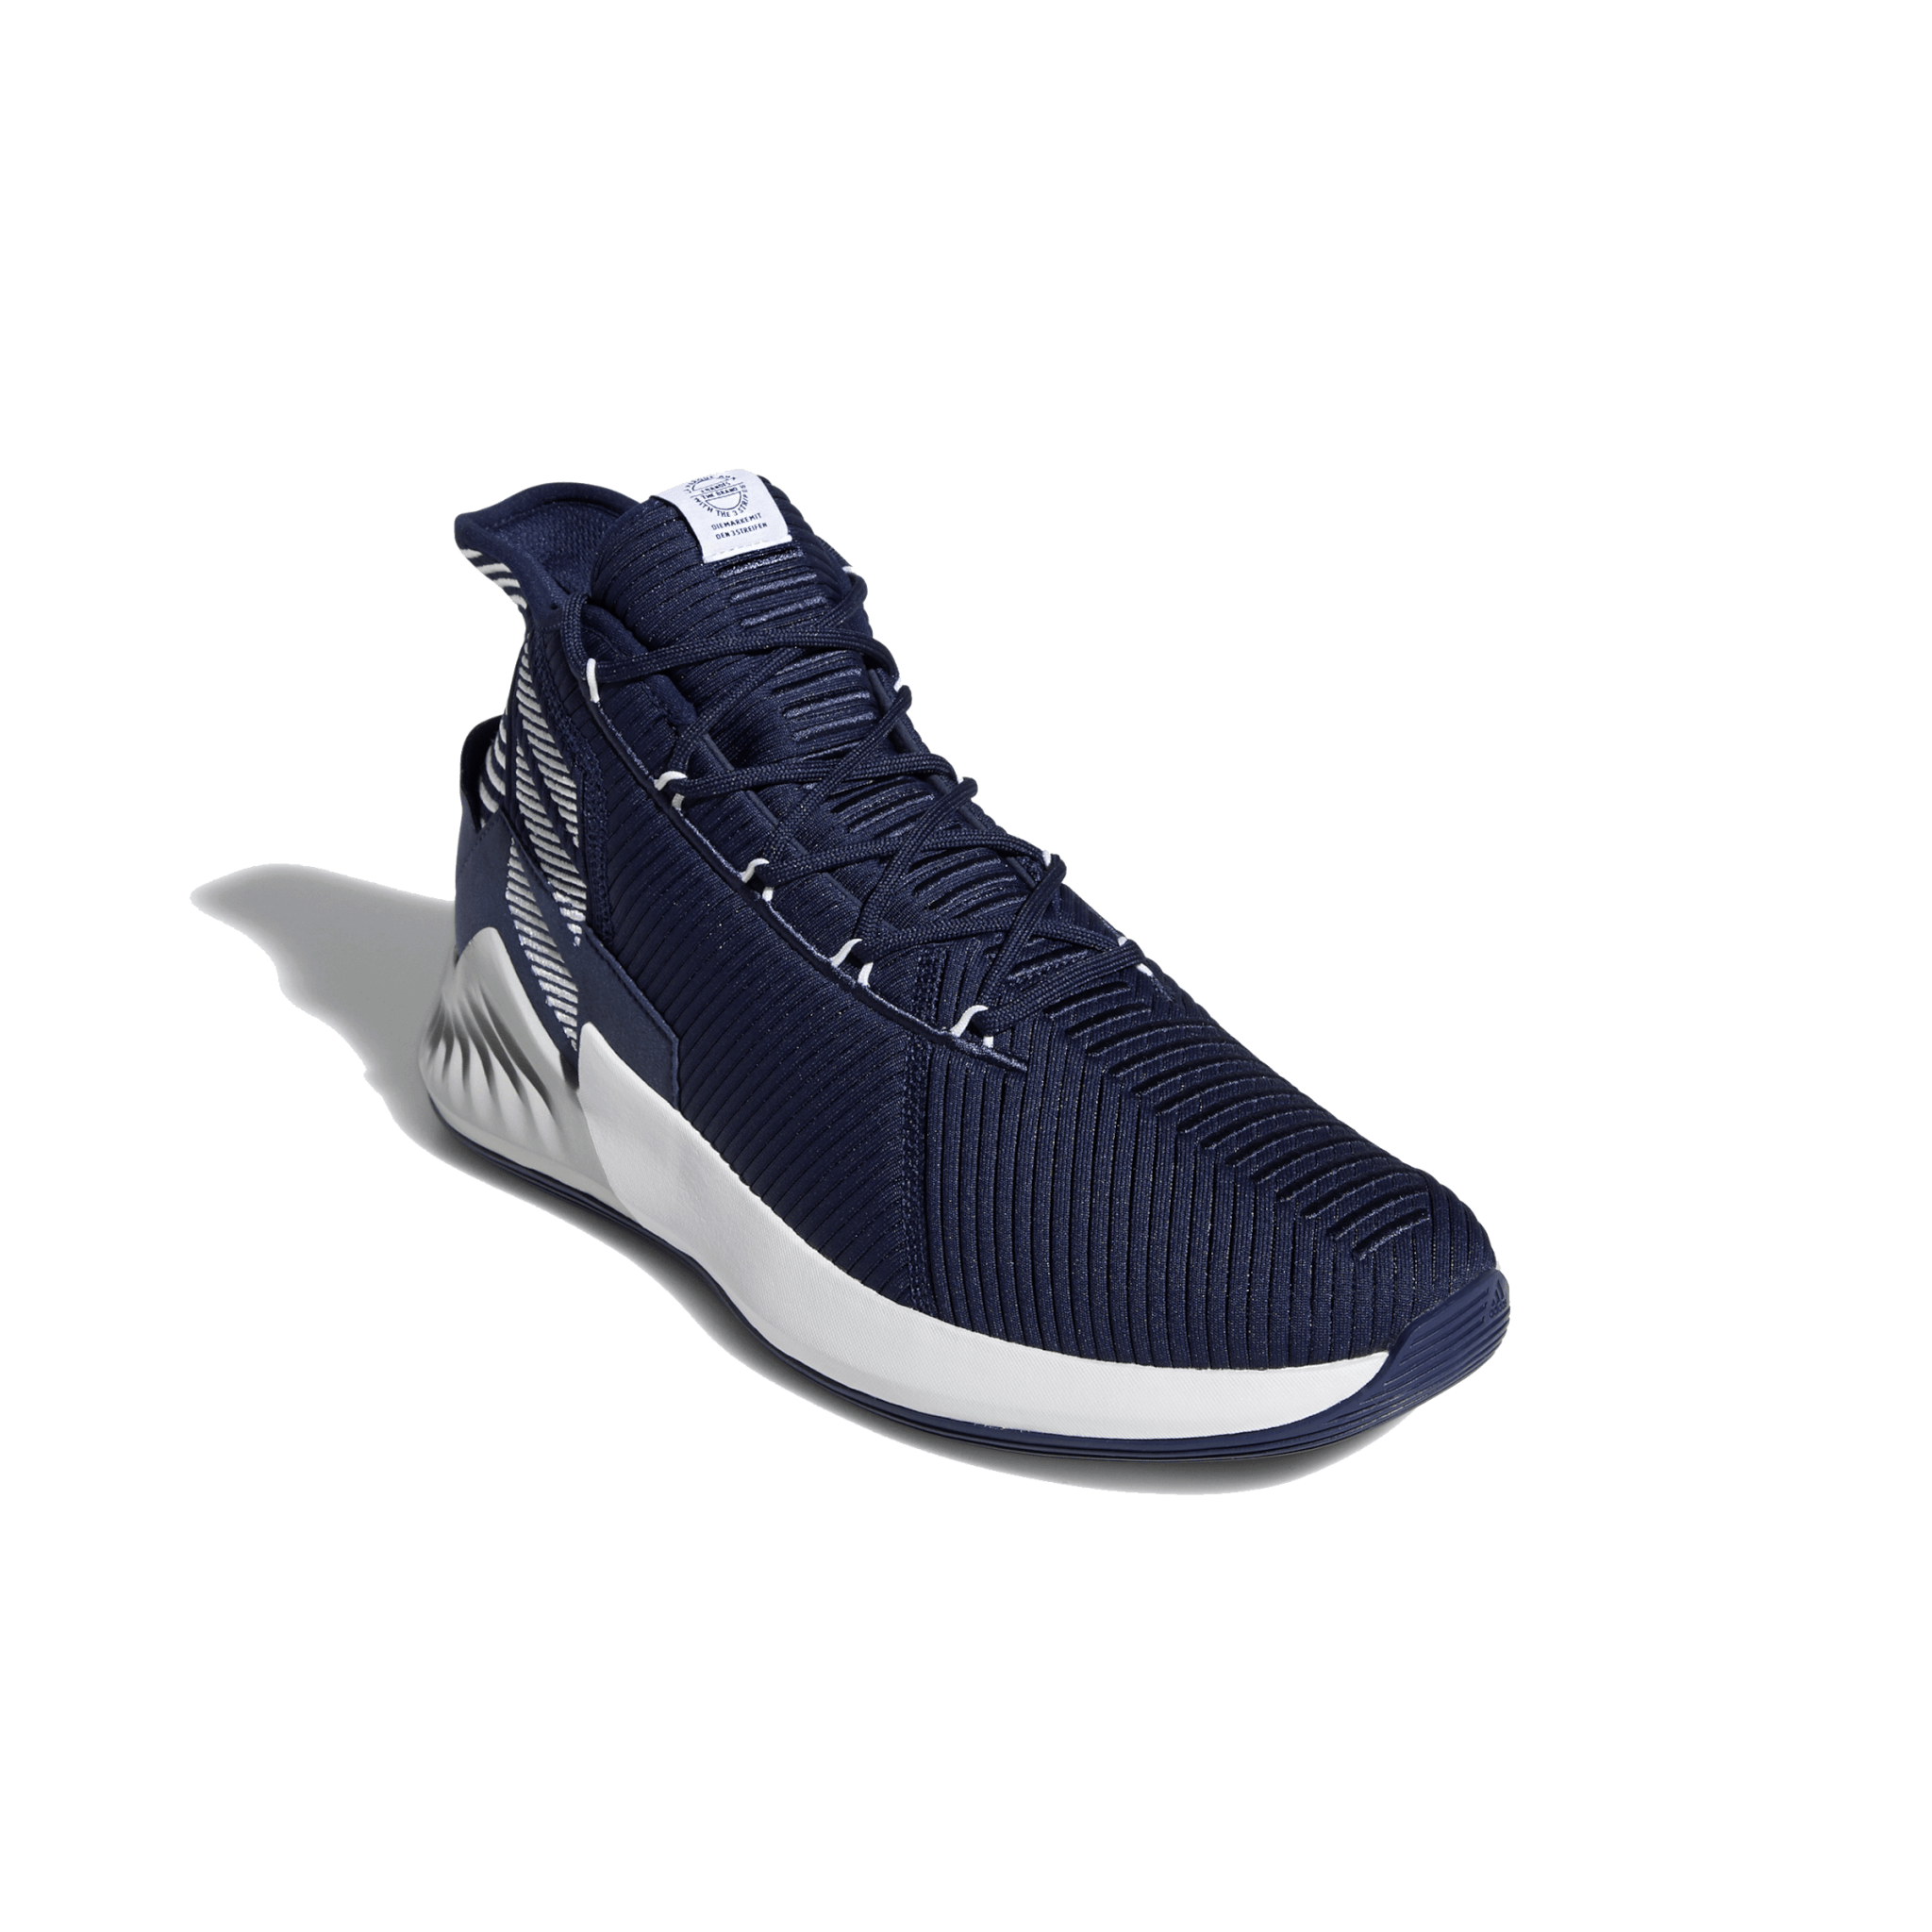 2adidas d rose casual